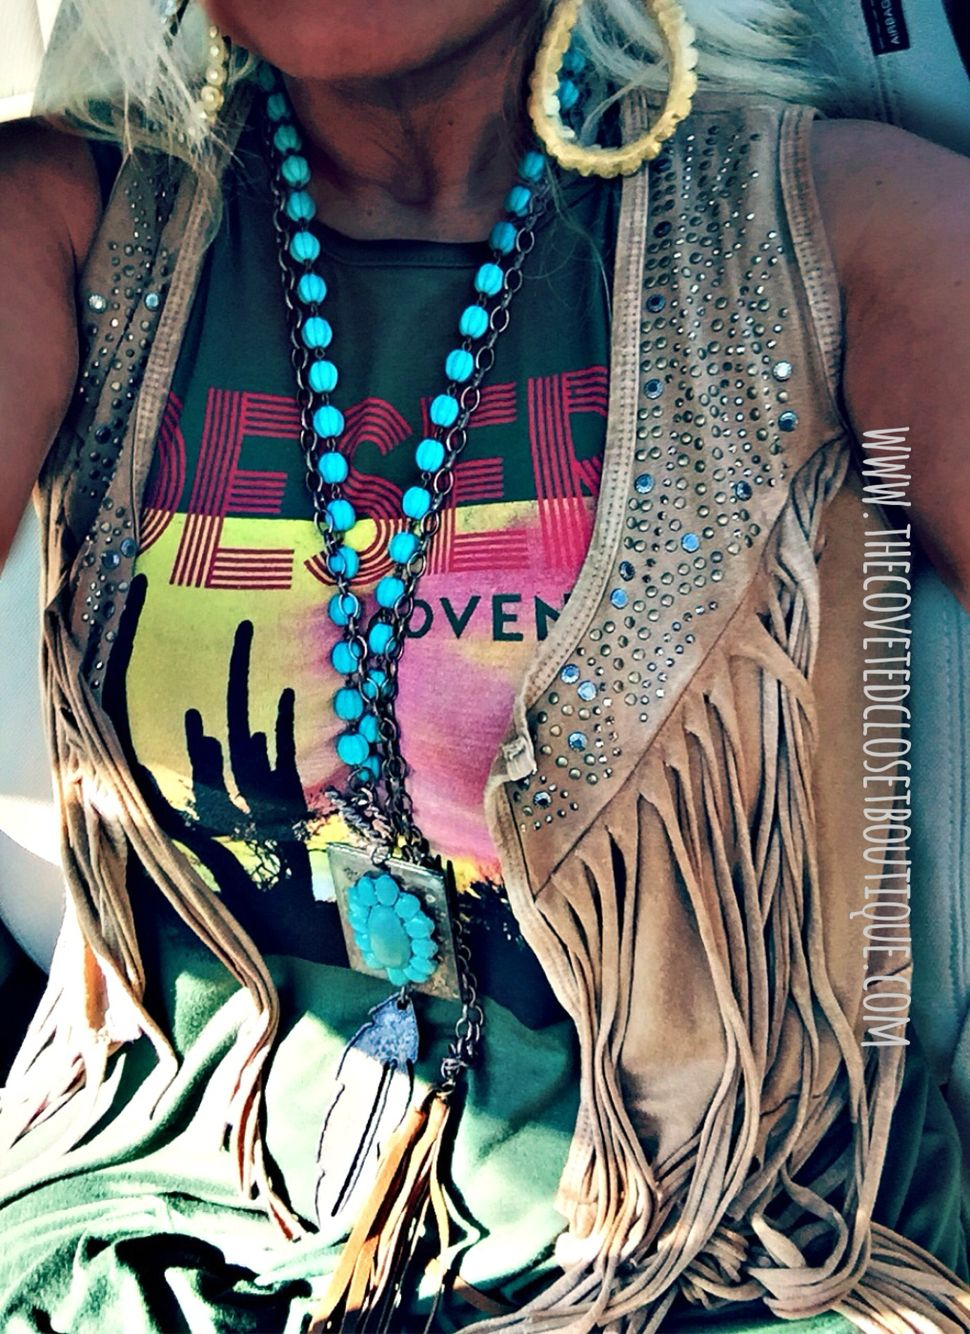 gypsy soul style clothes #gypsy_style_shirts